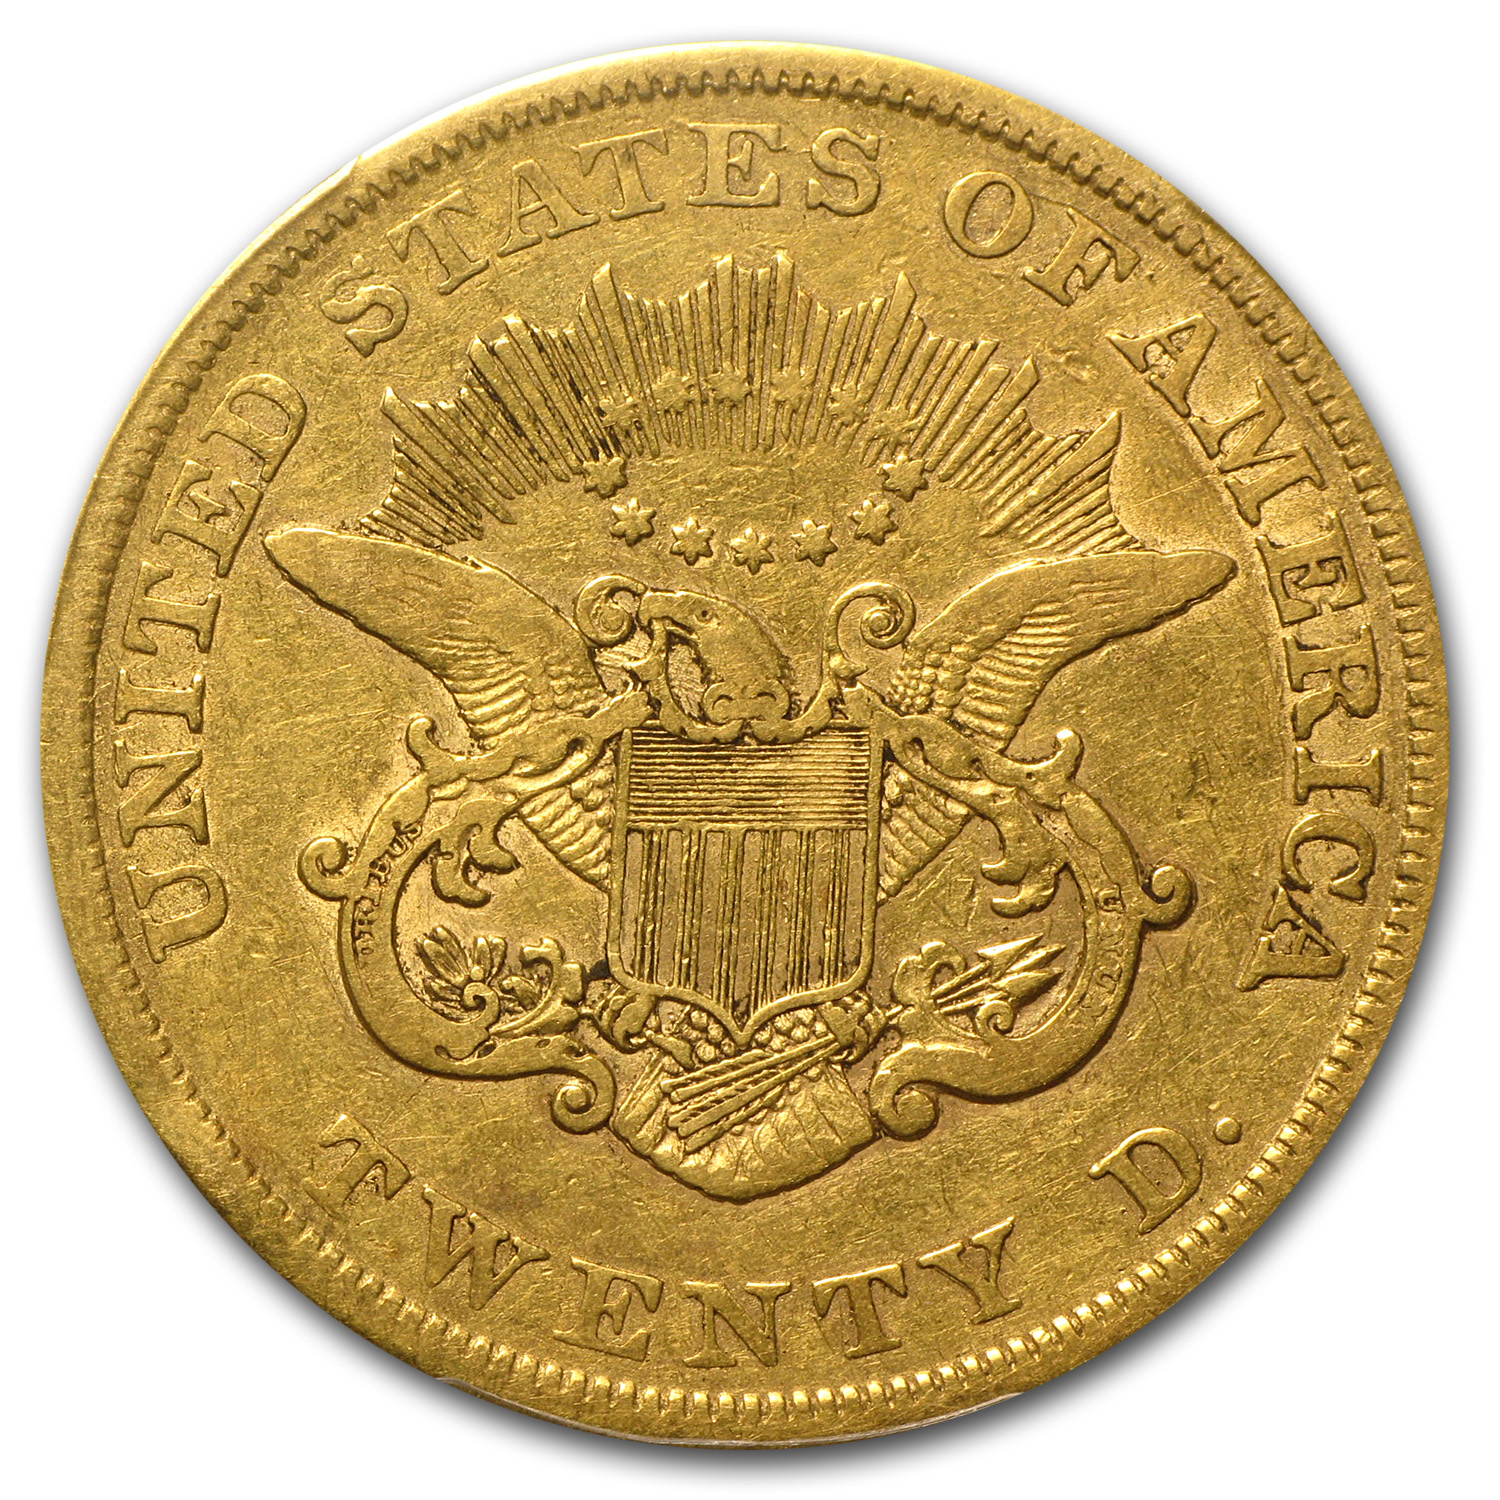 1857 $20 Gold Liberty Double Eagle - F-12 PCGS - Lowball